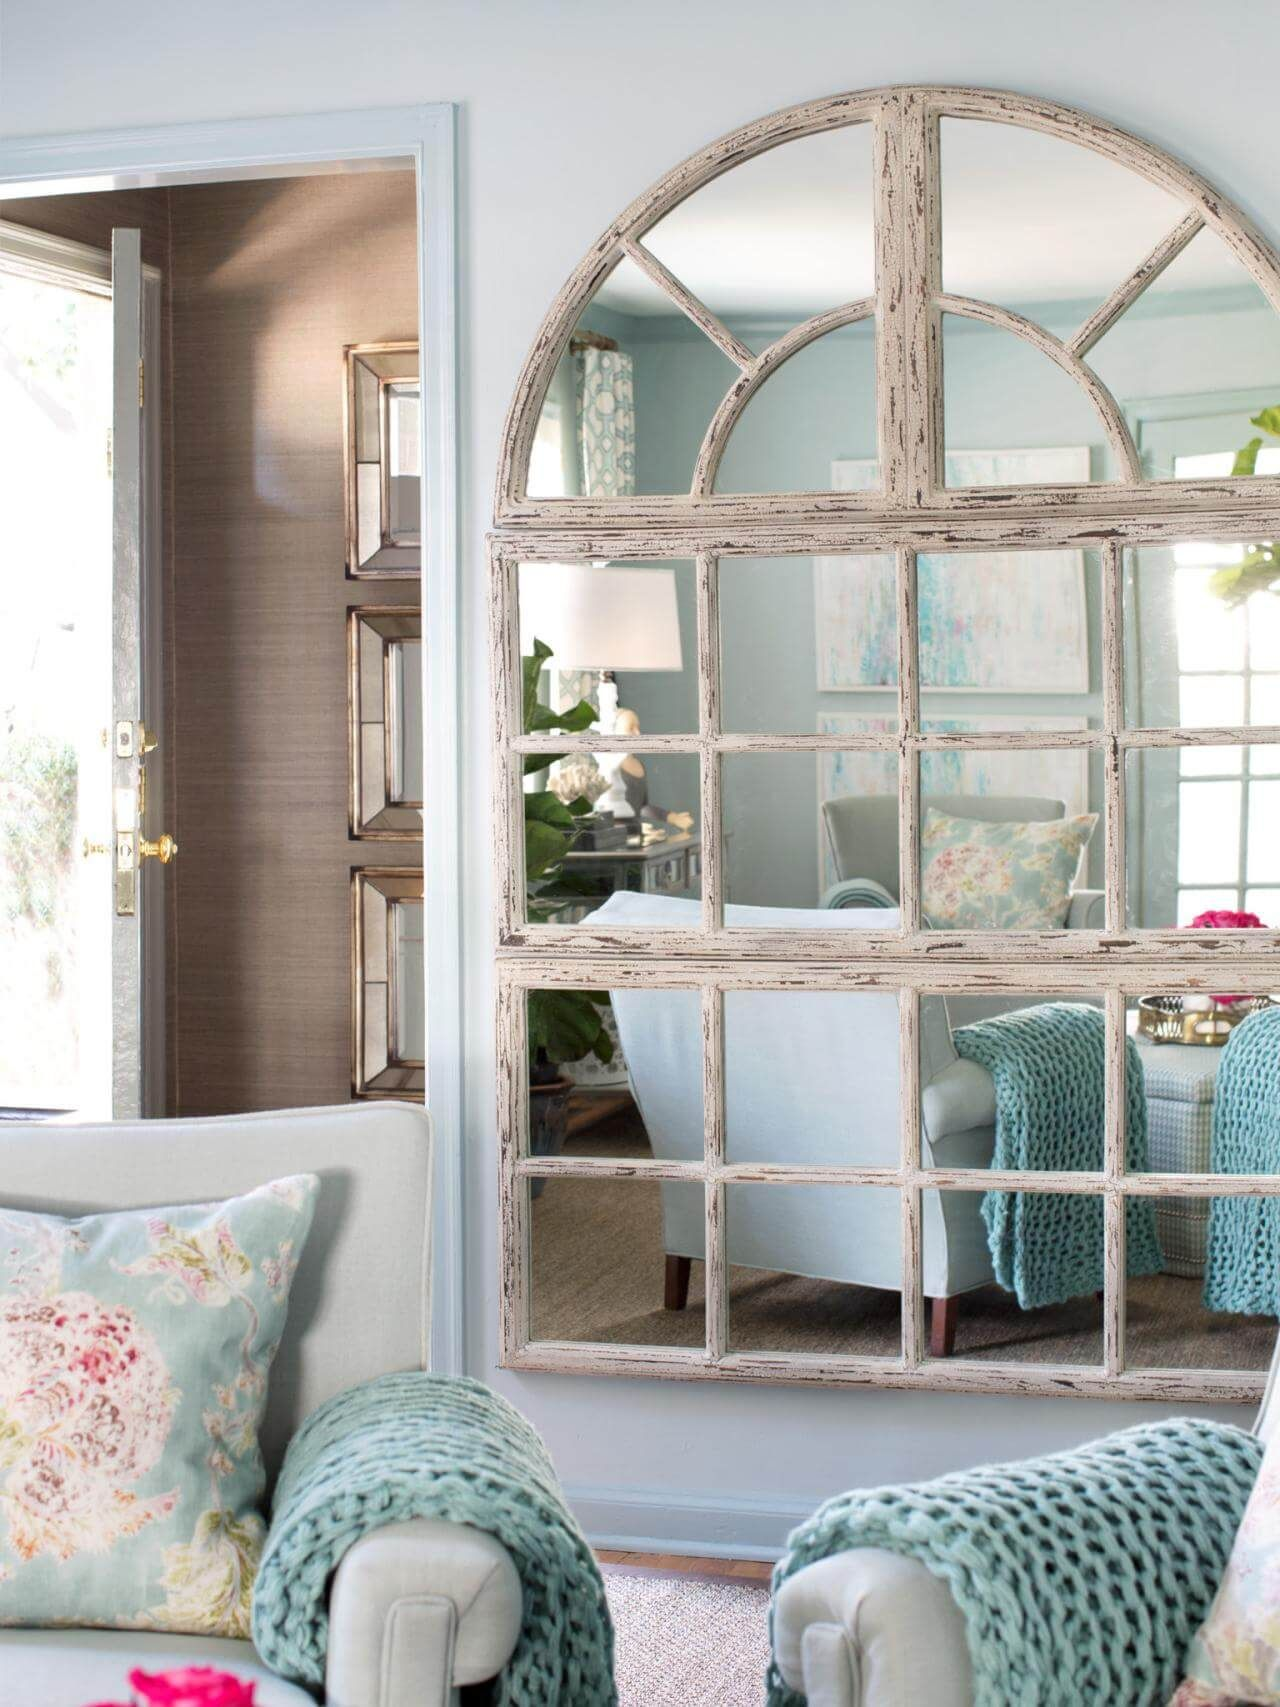 33 Mirror Decoration Ideas To Brighten Your Home Small Living Room Design Small Living Rooms Small Living Room